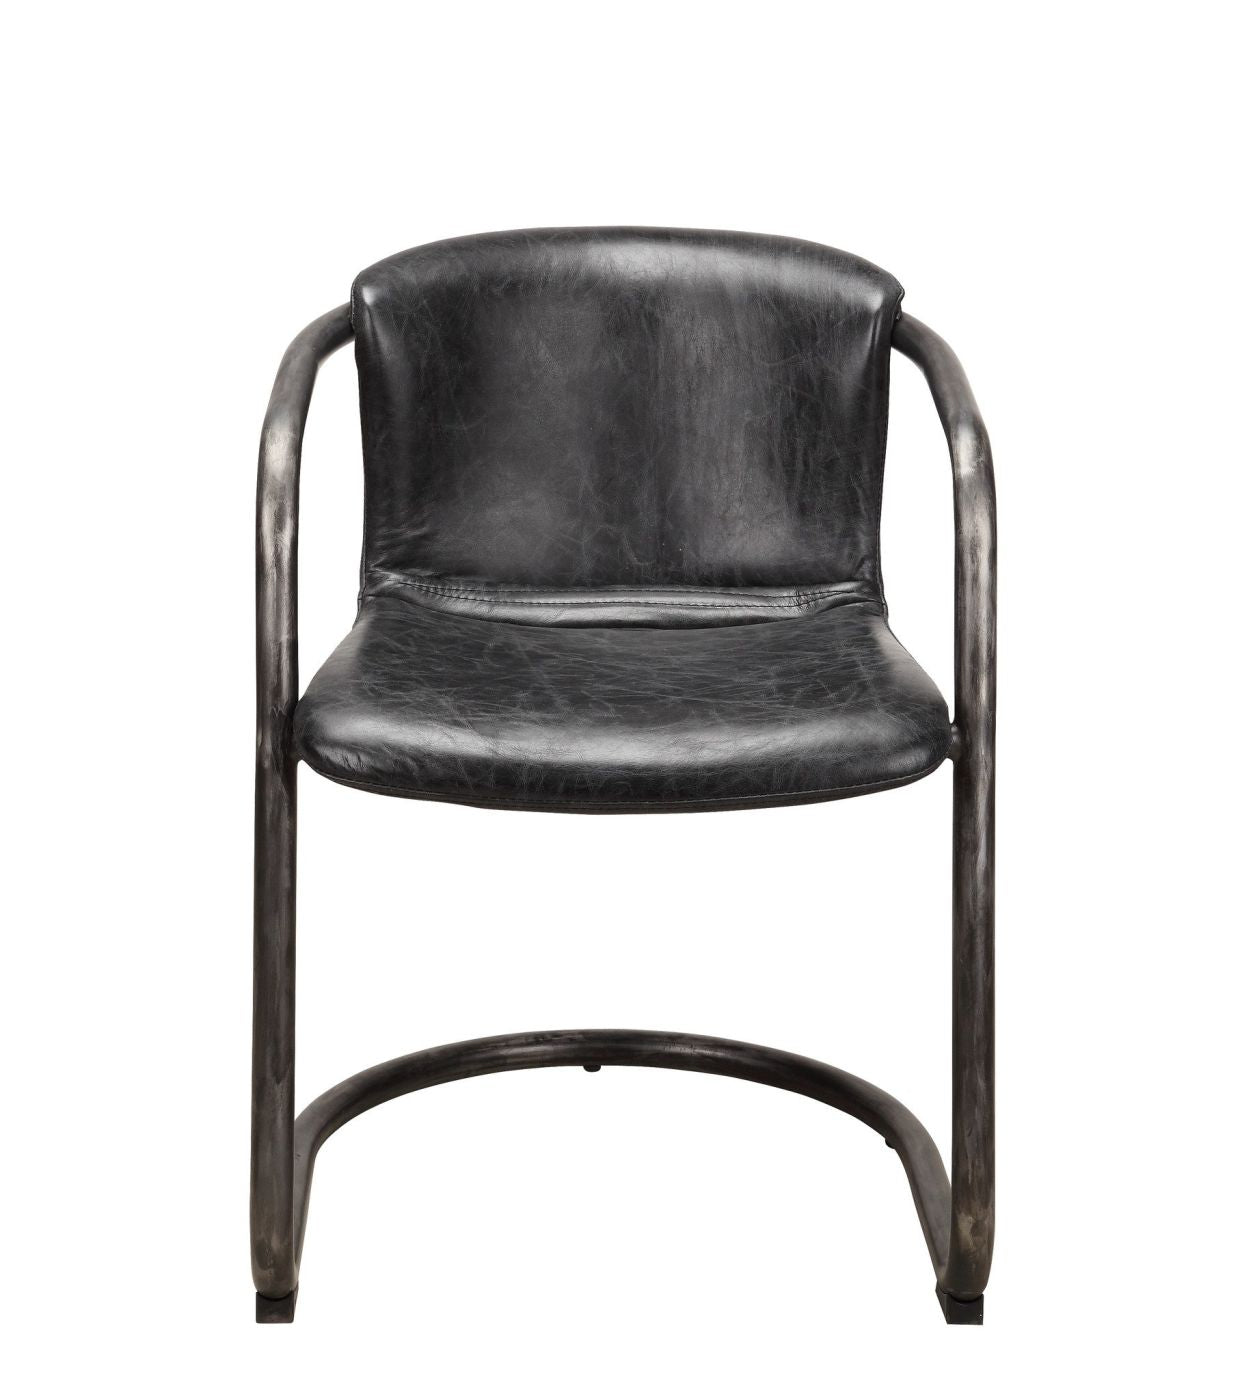 Picture of: Best Price On Moe S Home Collection Pk 1059 02 Freeman Modern Industrial Dining Chair Antique Black Distressed Leather Set Of 2 Only 1 024 00 At Contemporary Furniture Warehouse